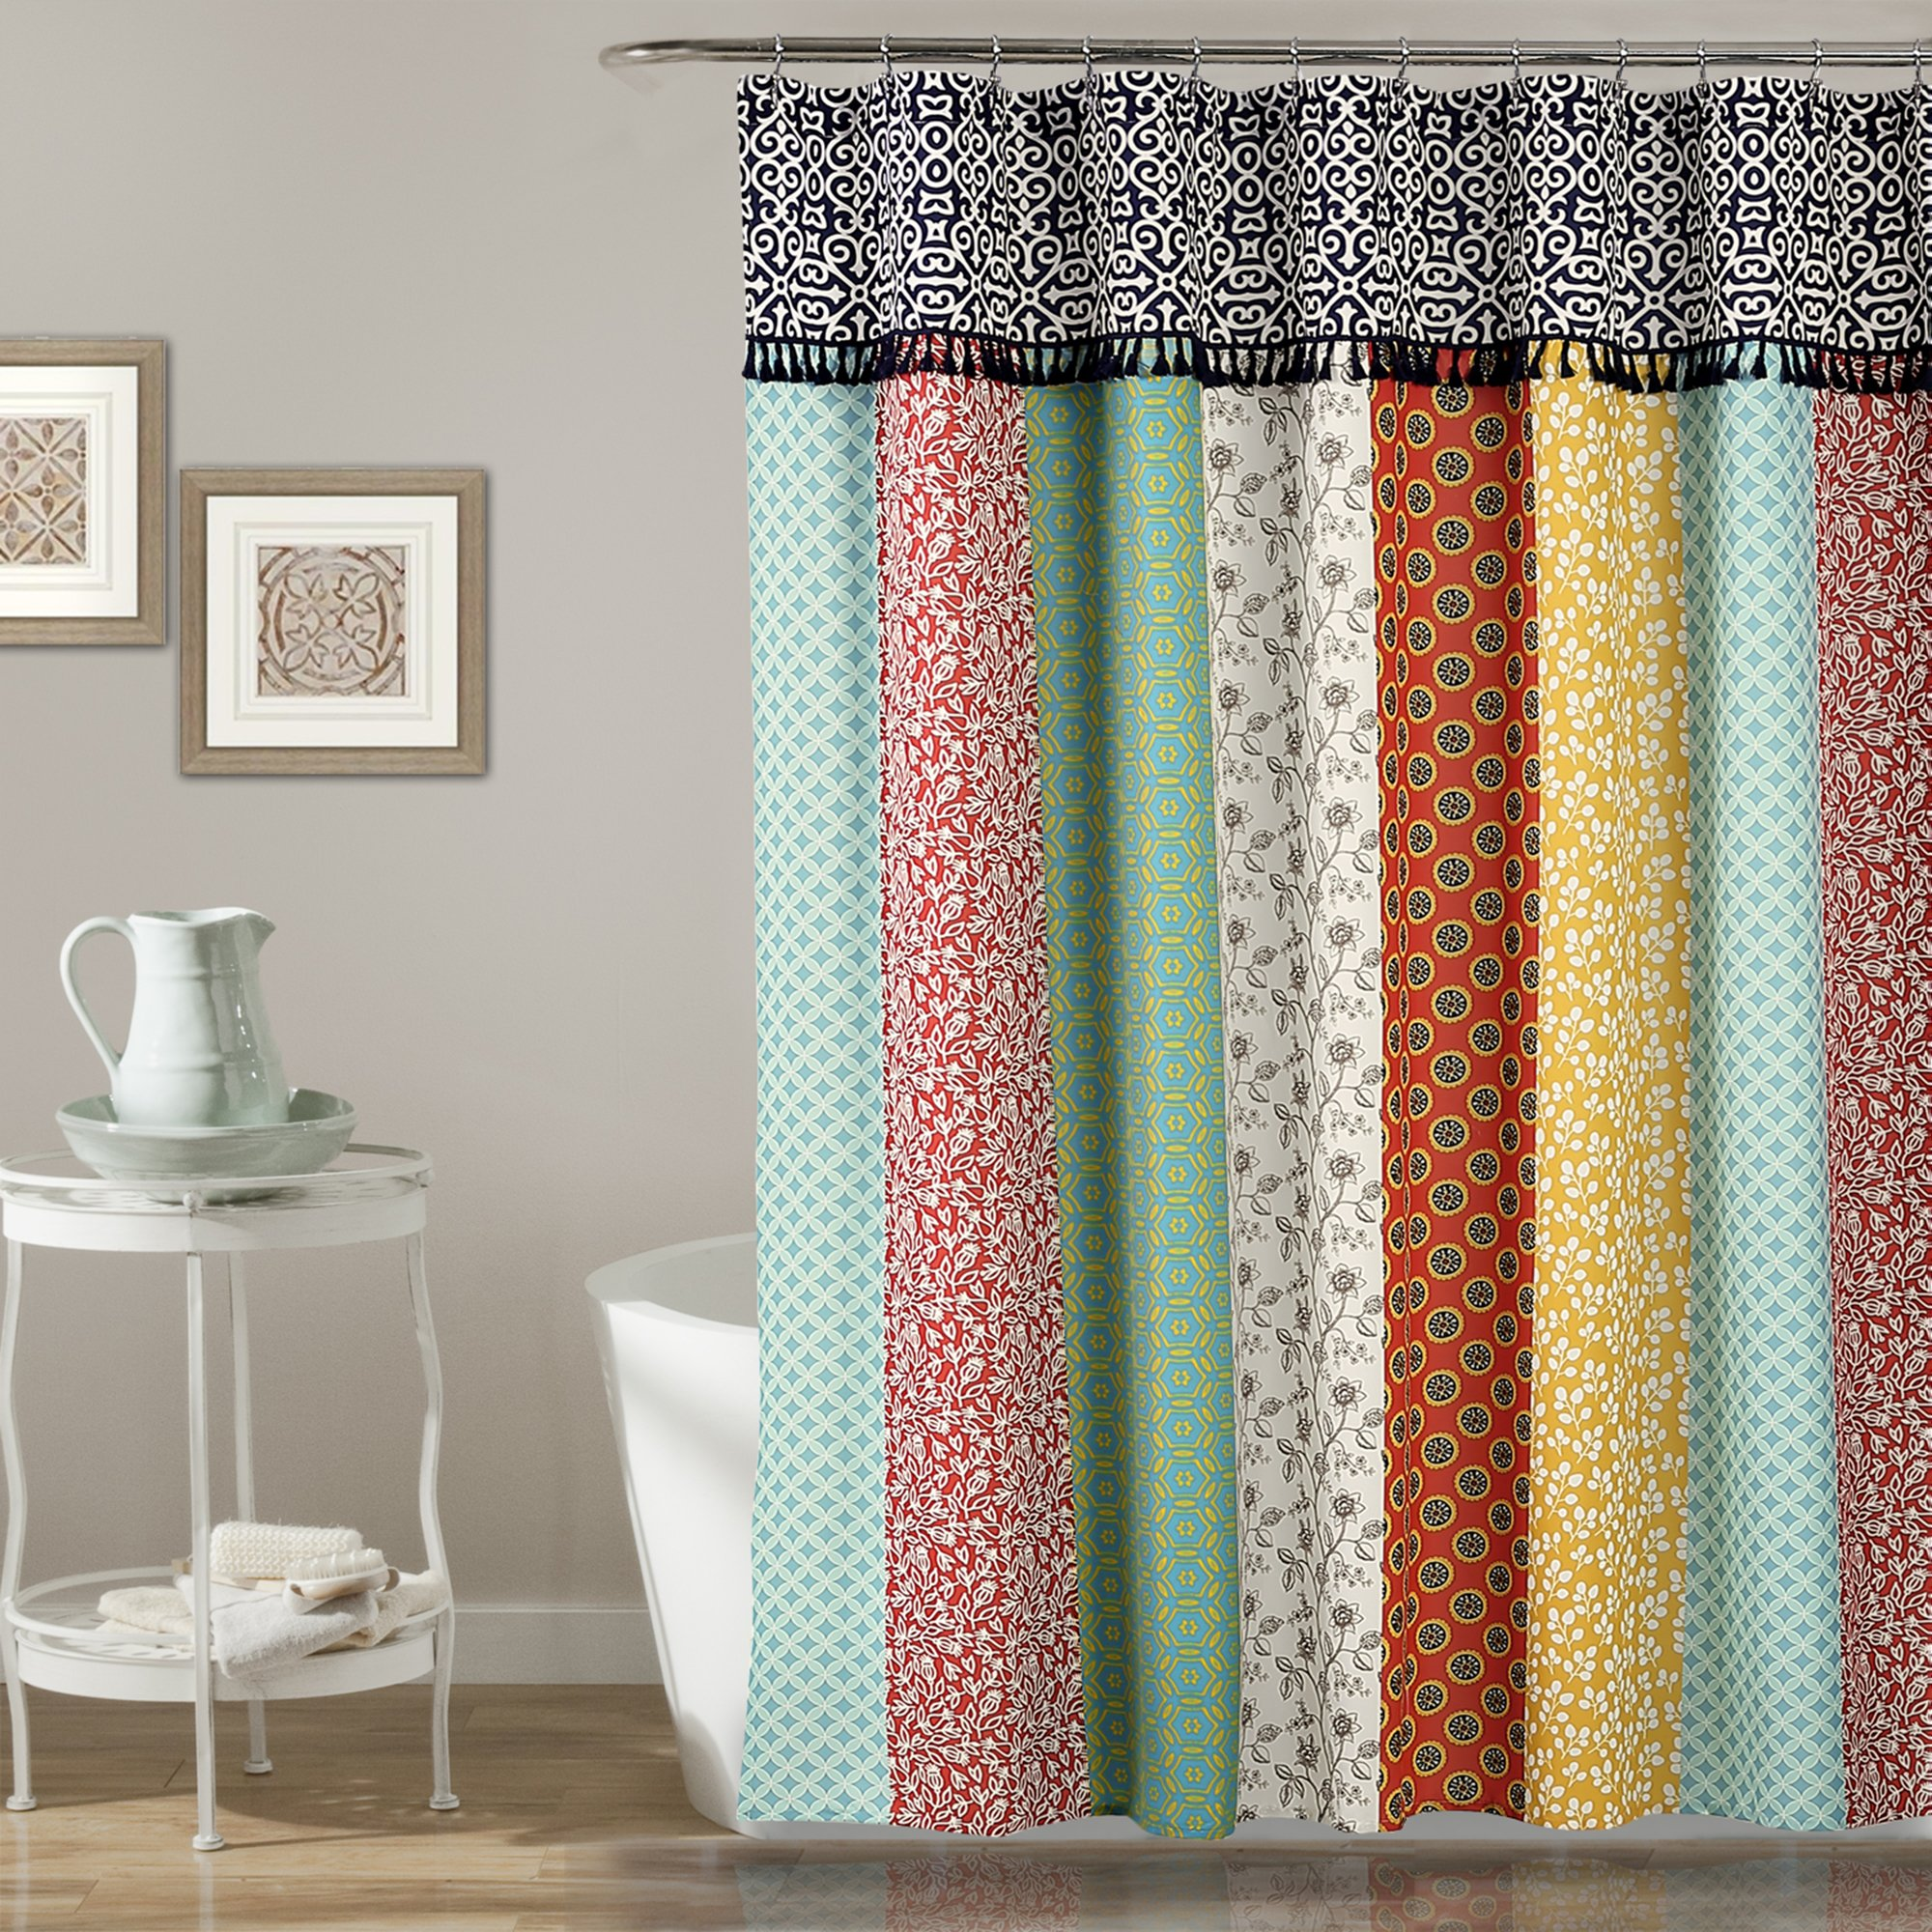 Fabric Shower Curtain 72 x 70 Printed Patterns Floral 15 Styles Geometric